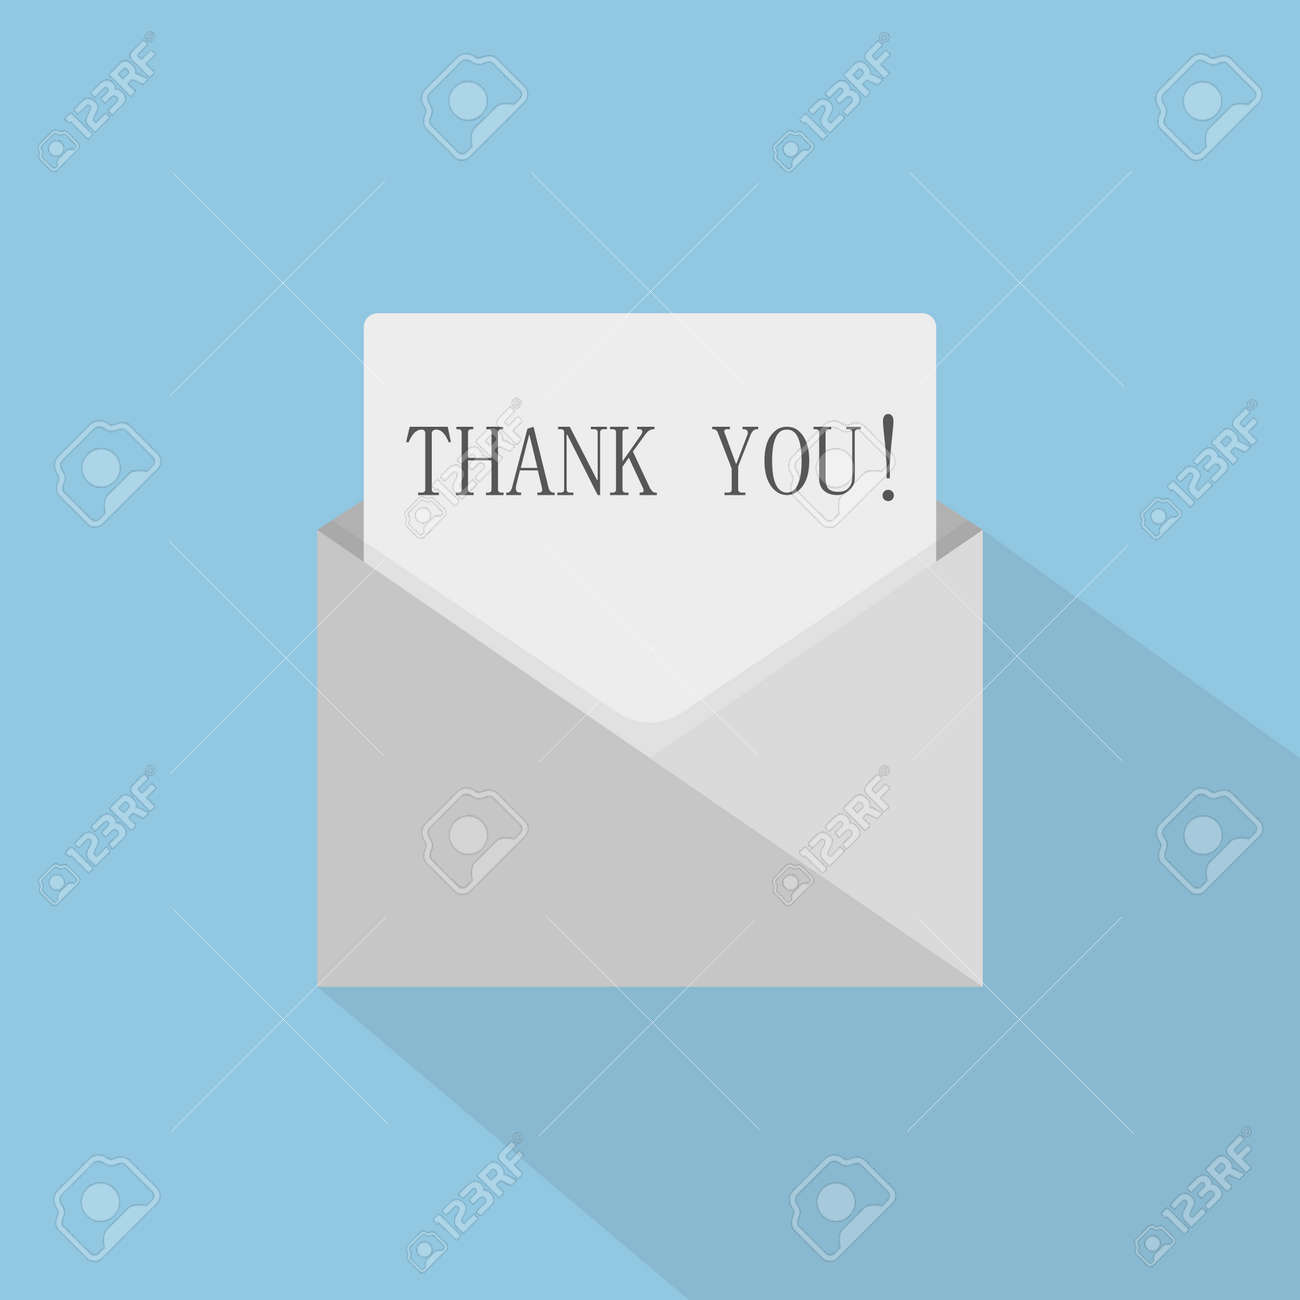 Thank you concept with open envelope. The letter says thank you. Vector illustration - 166681180